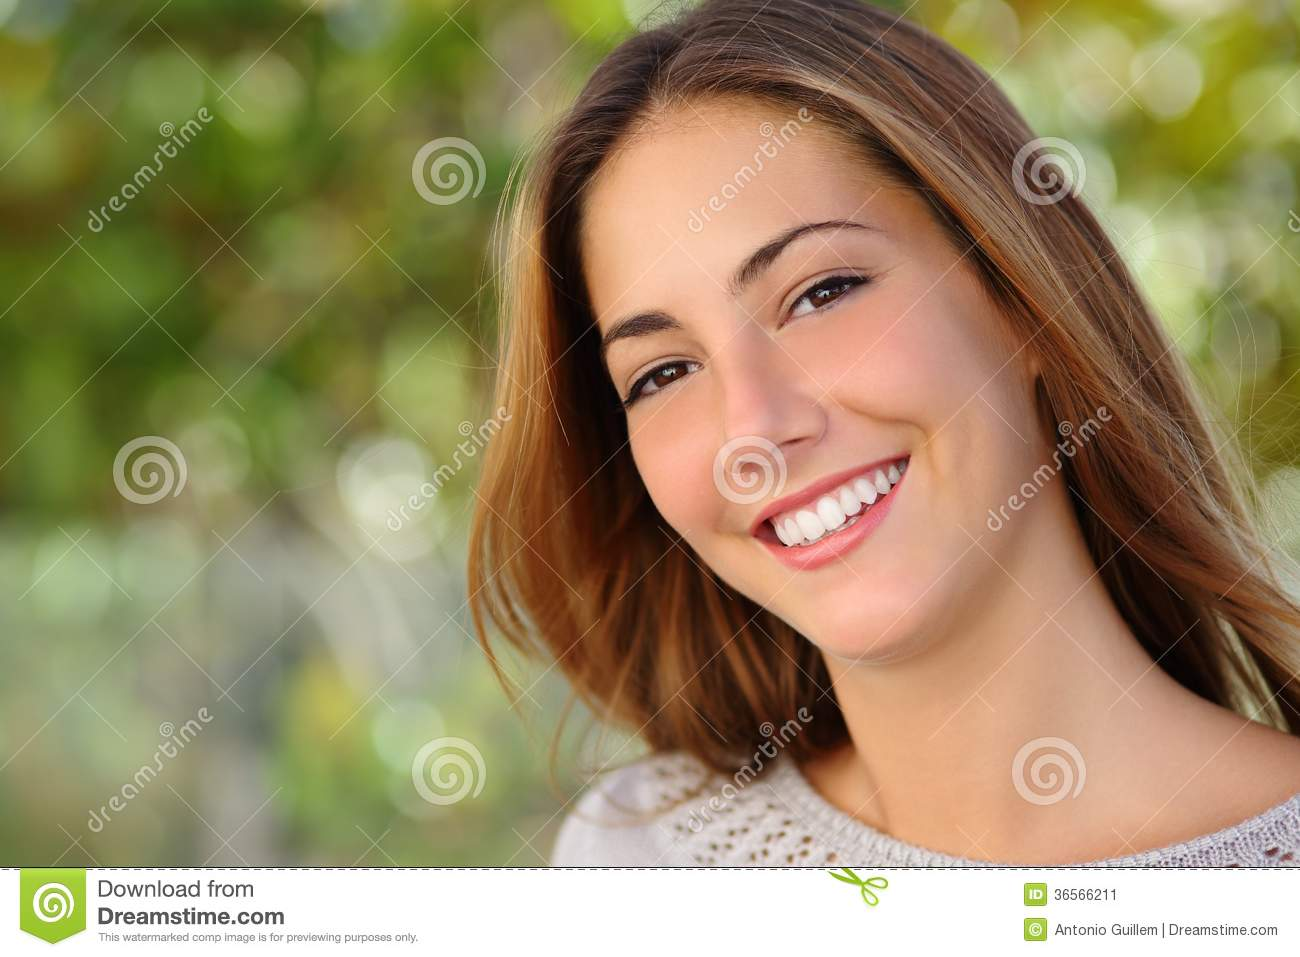 Beautiful white woman smile dental care concept